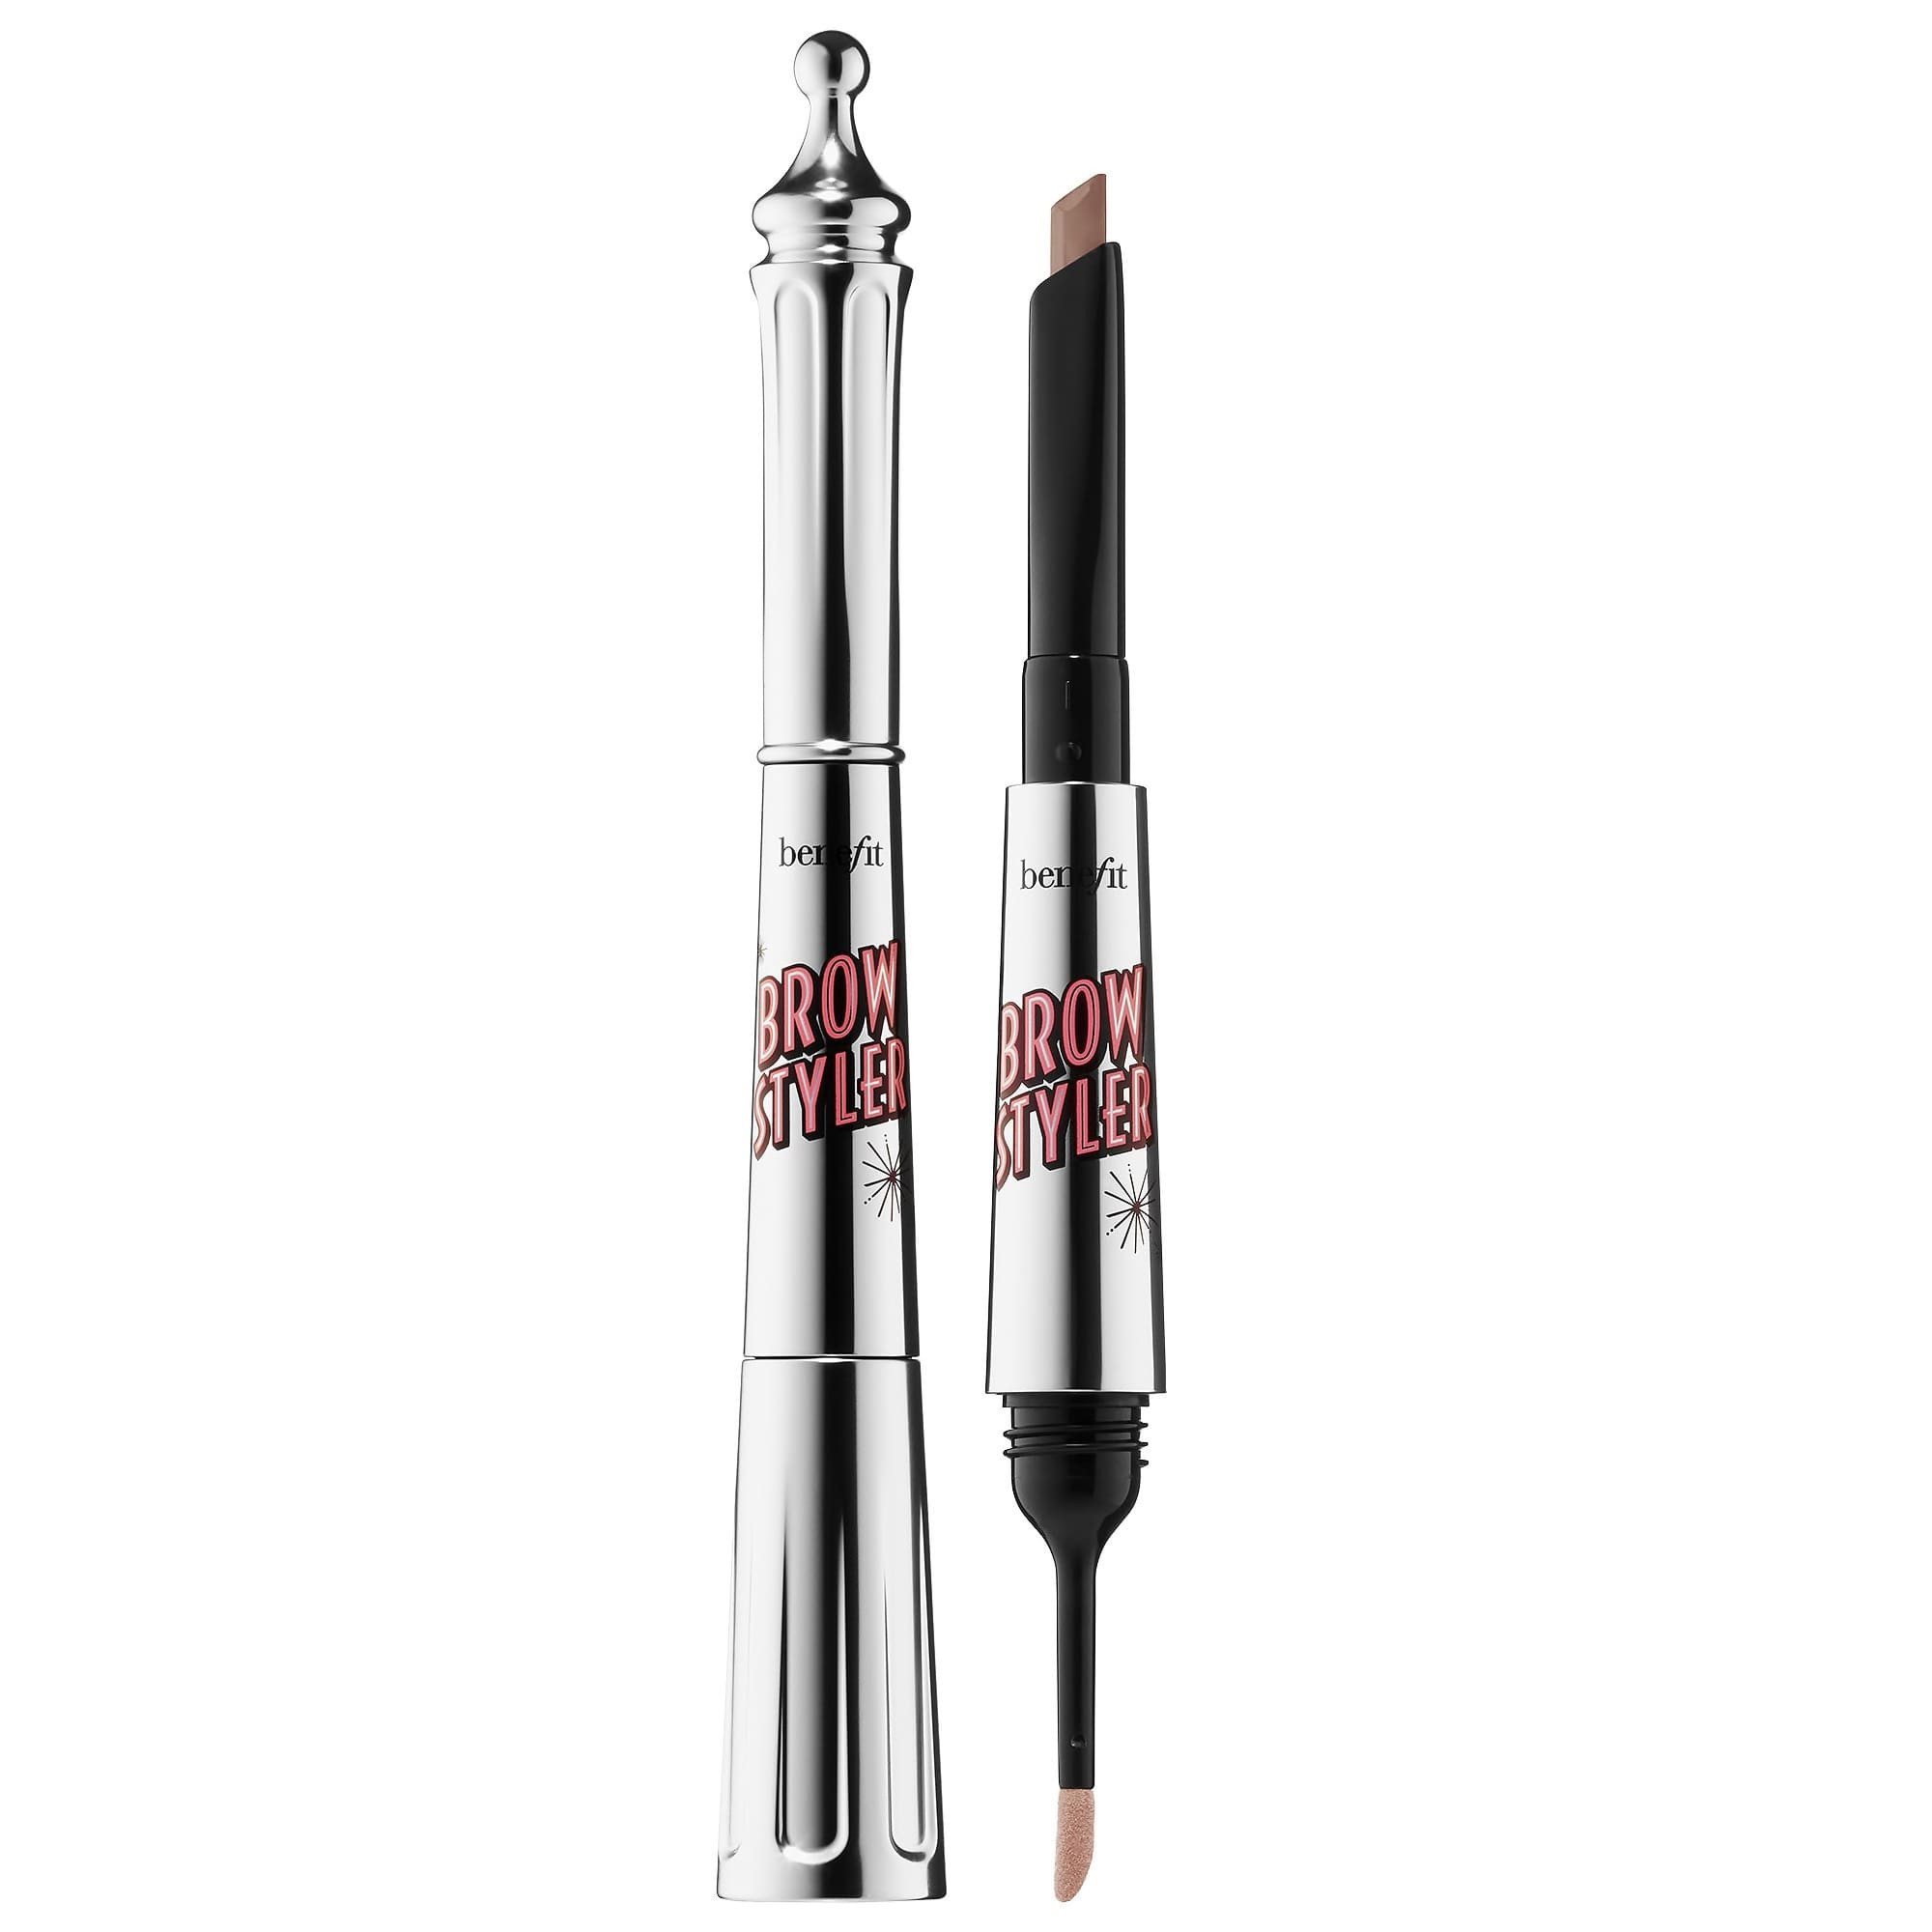 Benefit Cosmetics Brow Styler Shade 1